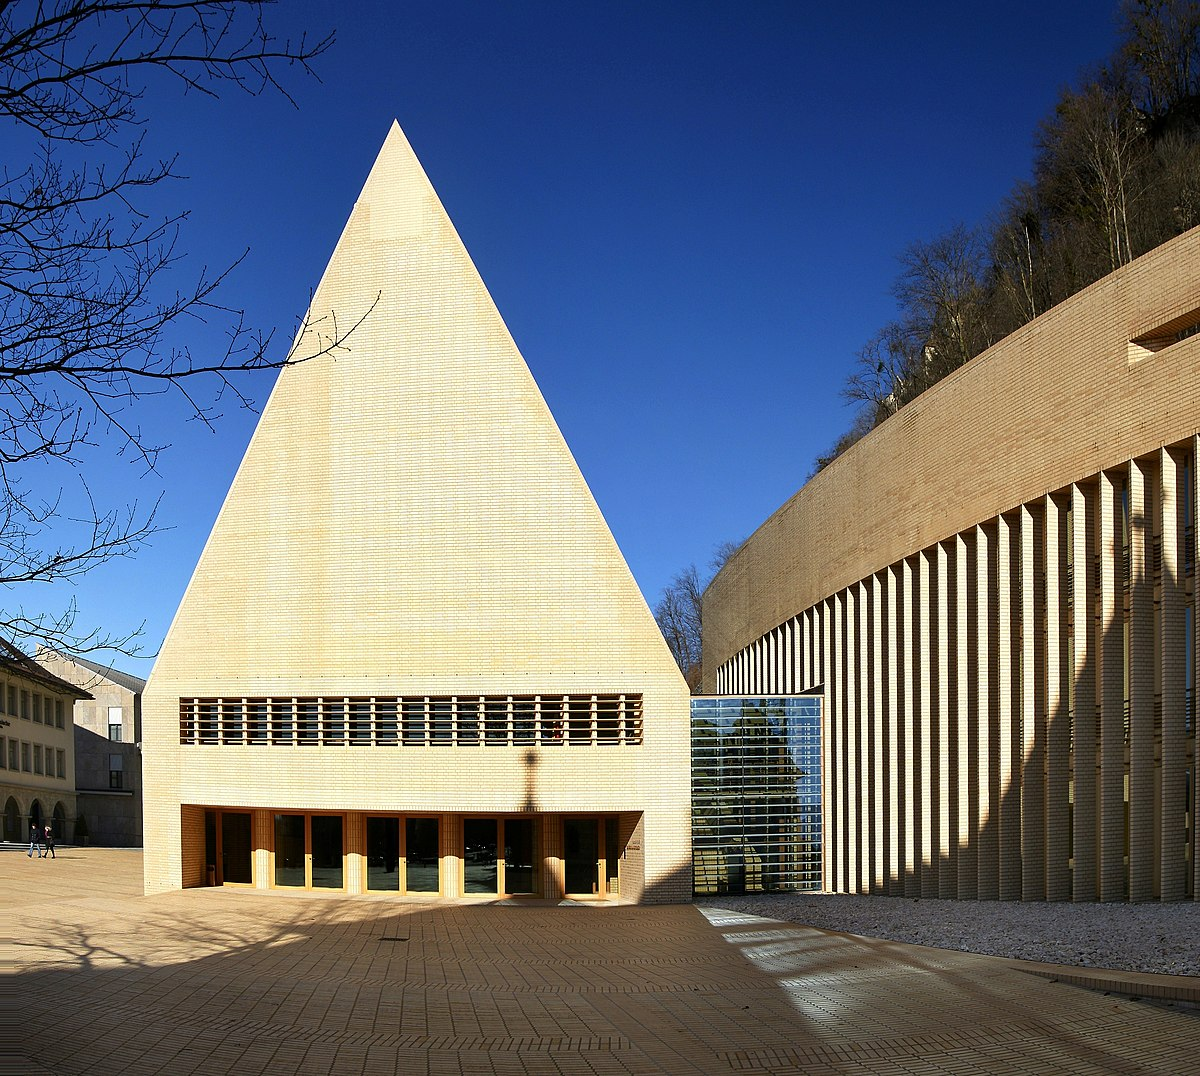 50*40 Landtag Des Fürstentums Liechtenstein – Wikipedia